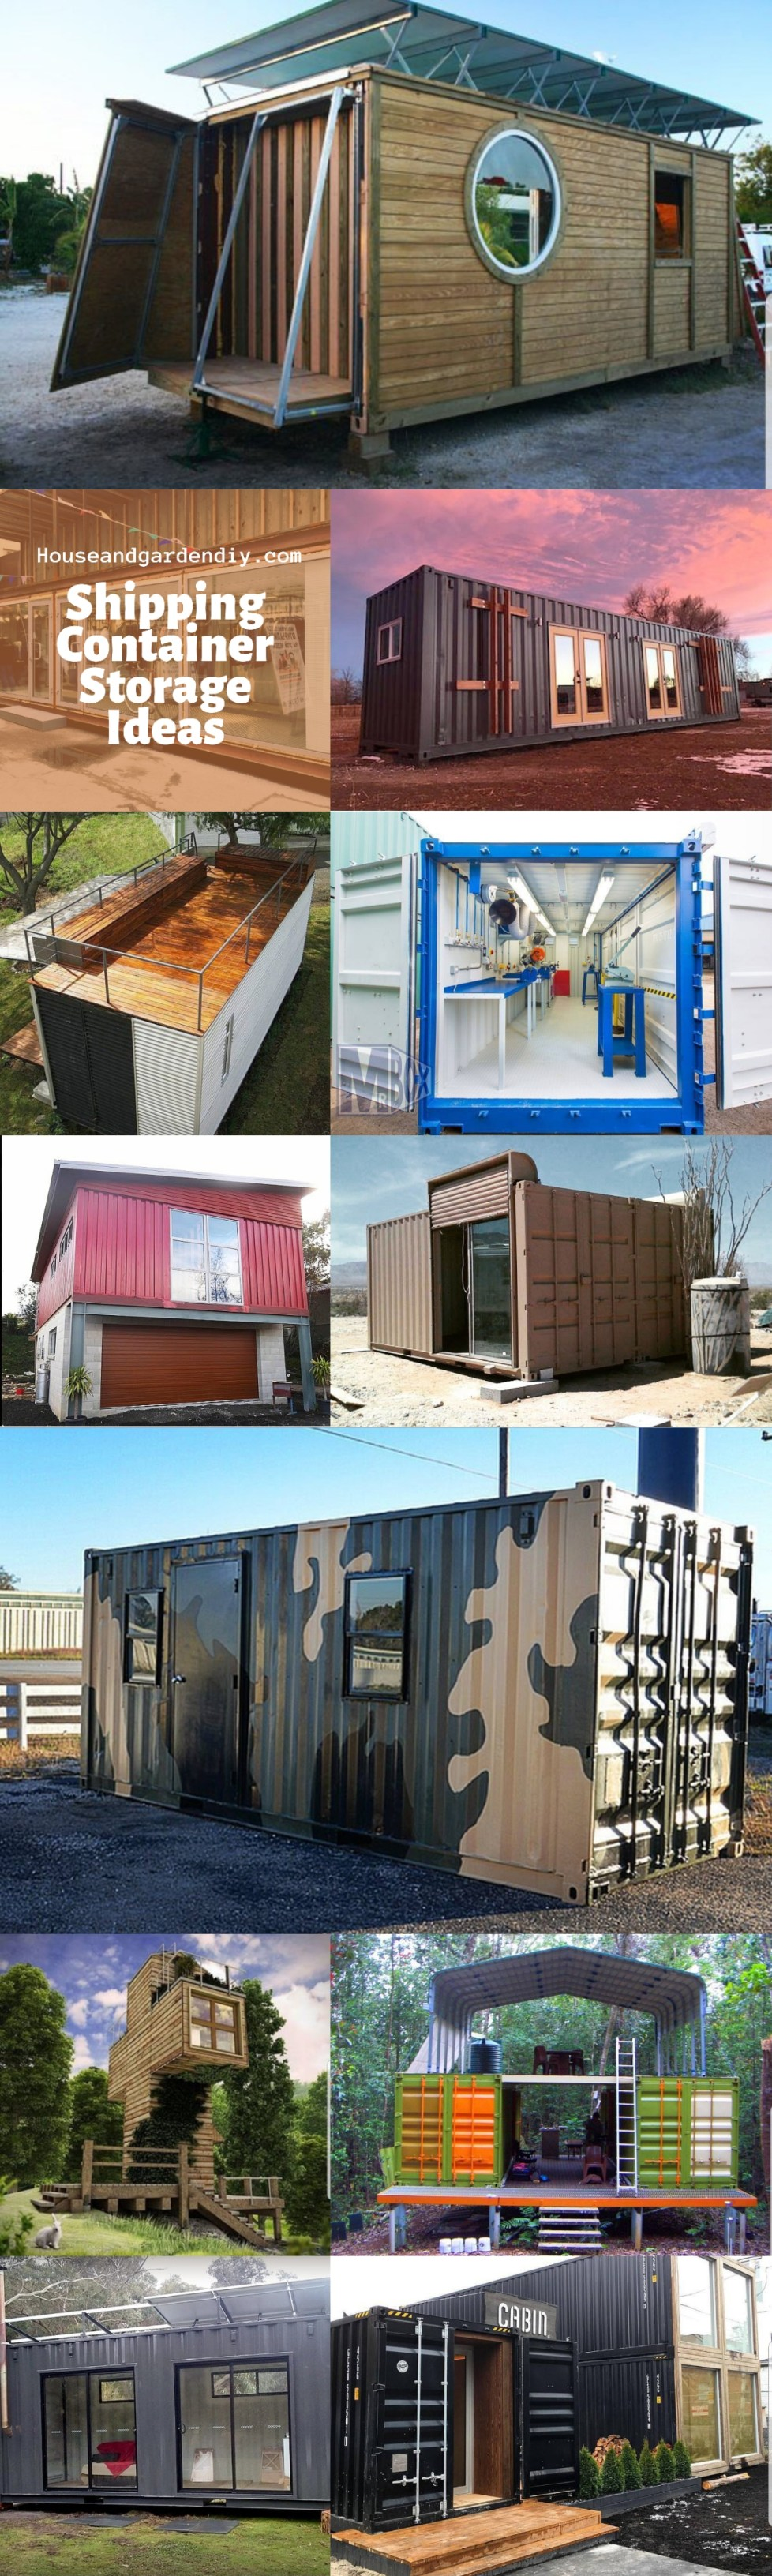 Shipping Container Storage Ideas